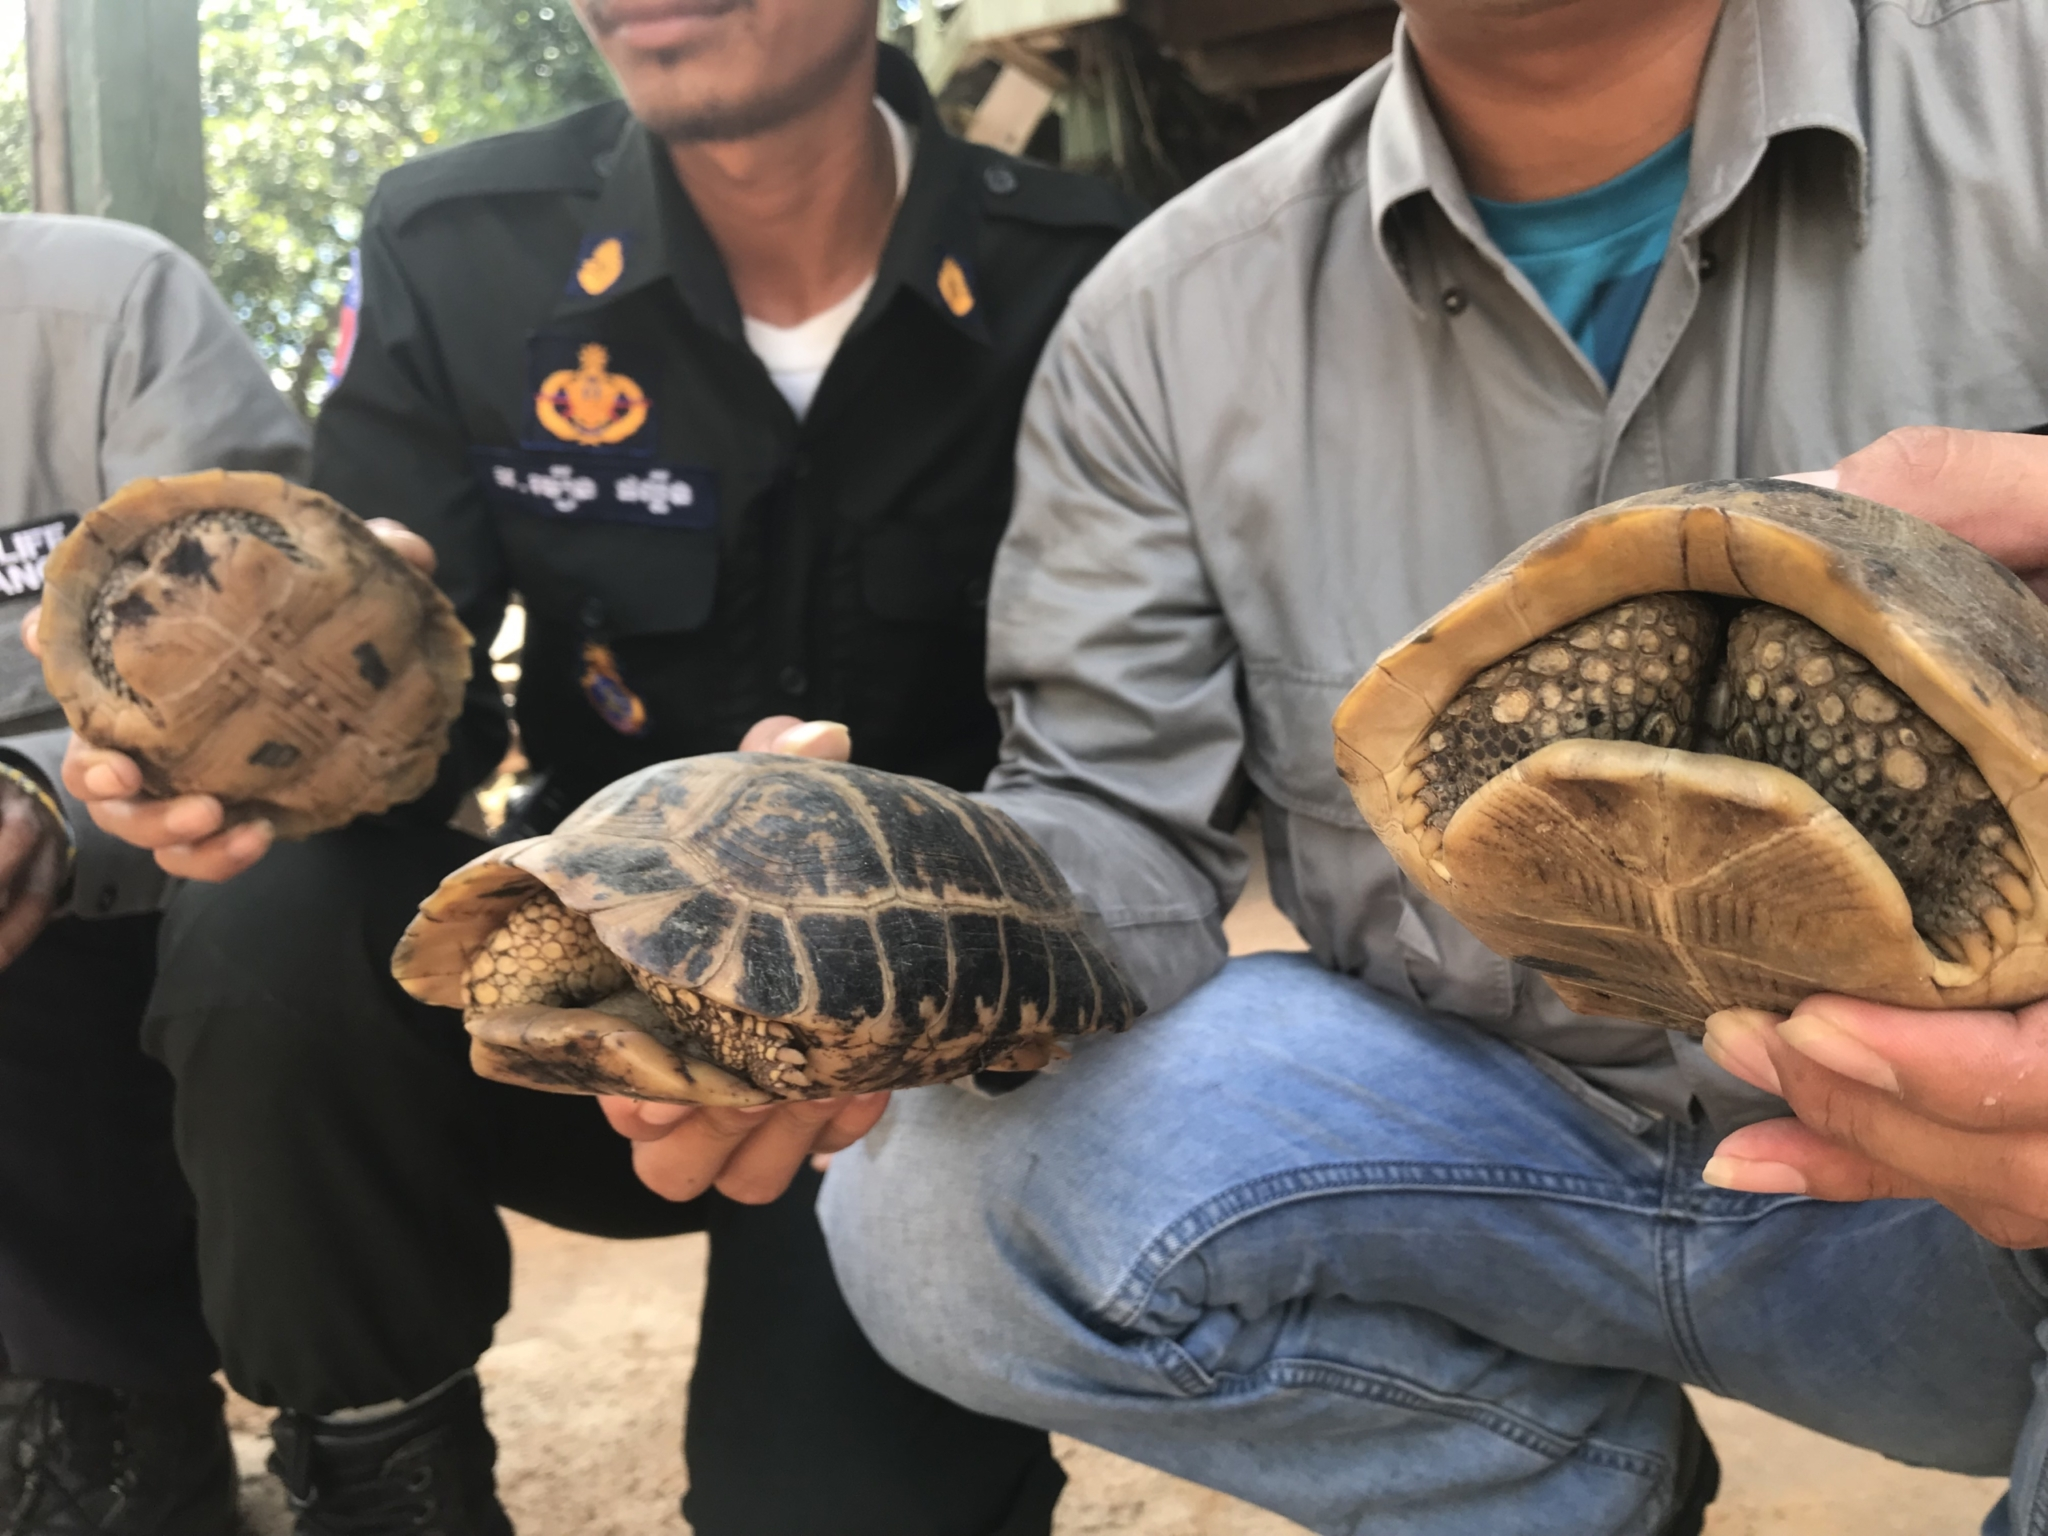 Critically Endangered elongated tortoises saved by rangers